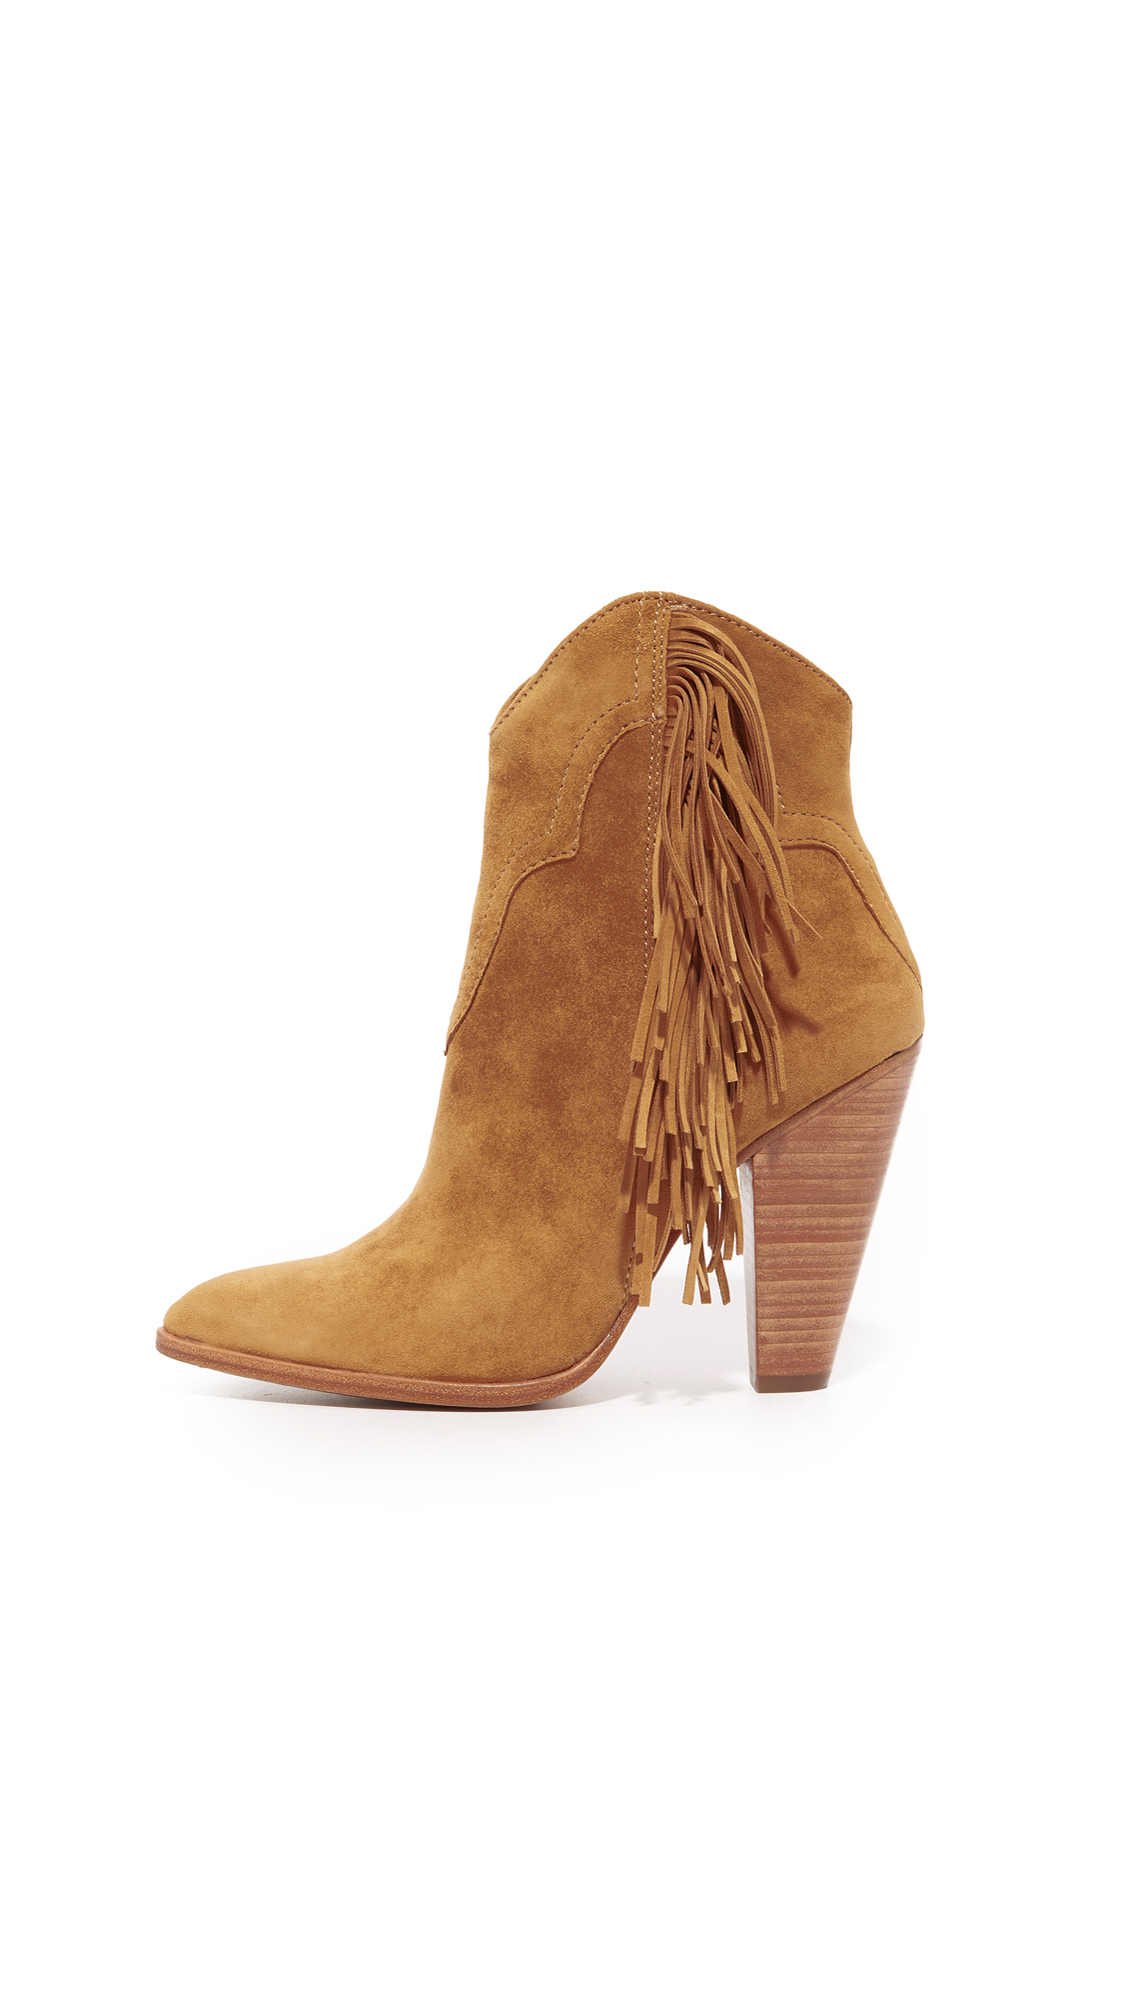 Frye Leather Remy Fringe Short Booties